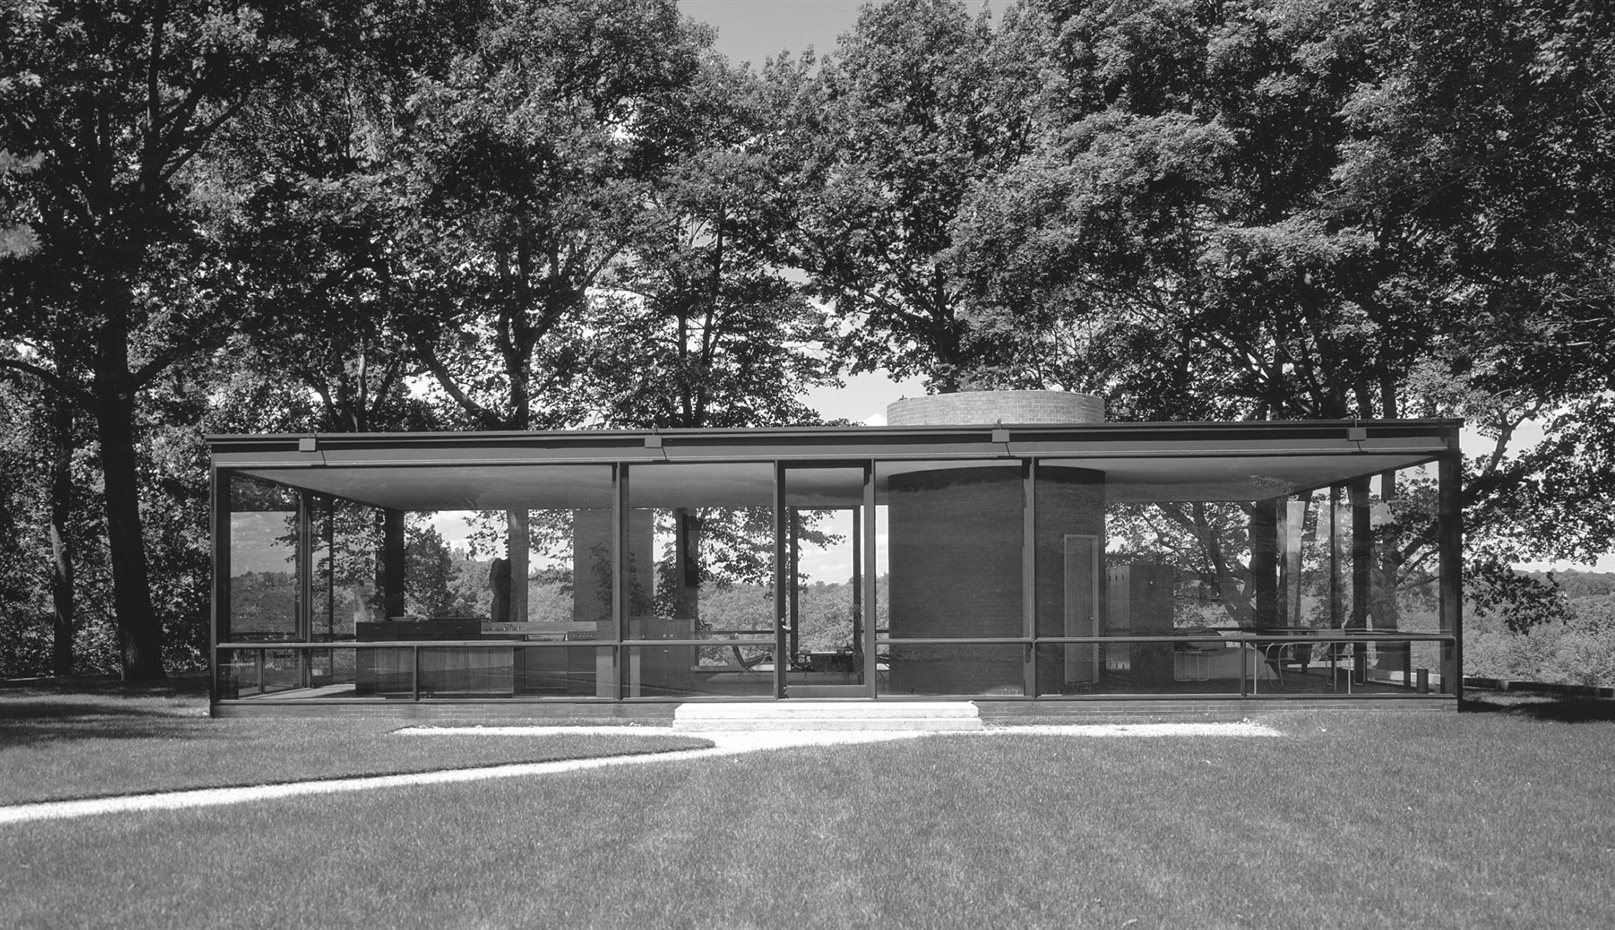 Philip Johnson: The Glass House, New Canaan, Connecticut, EEUU, 1949